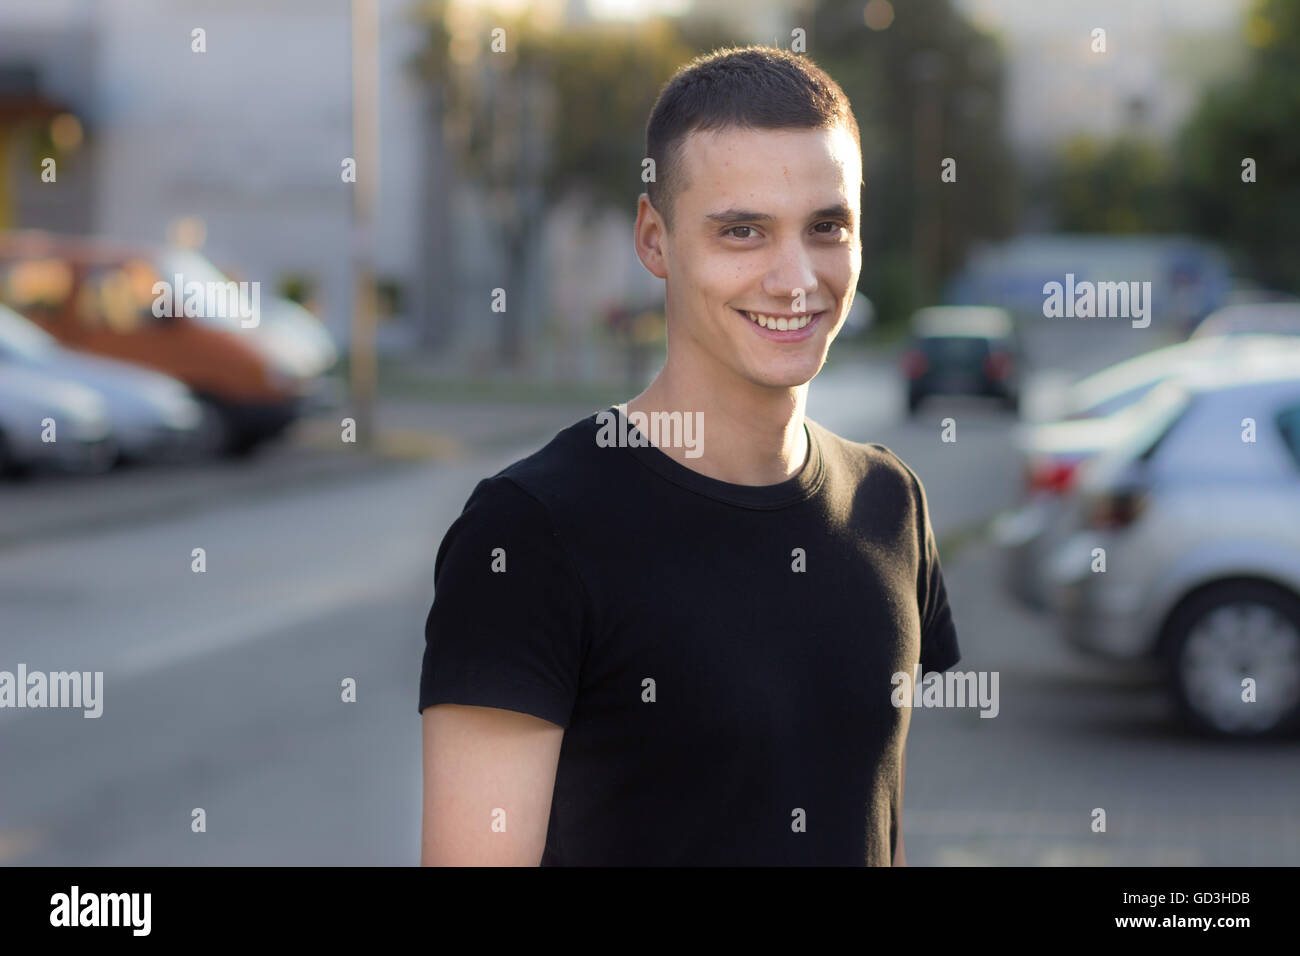 Young man in early 20s smiling portrait outdoors. Shallow depth of field, blur out od focus background. - Stock Image